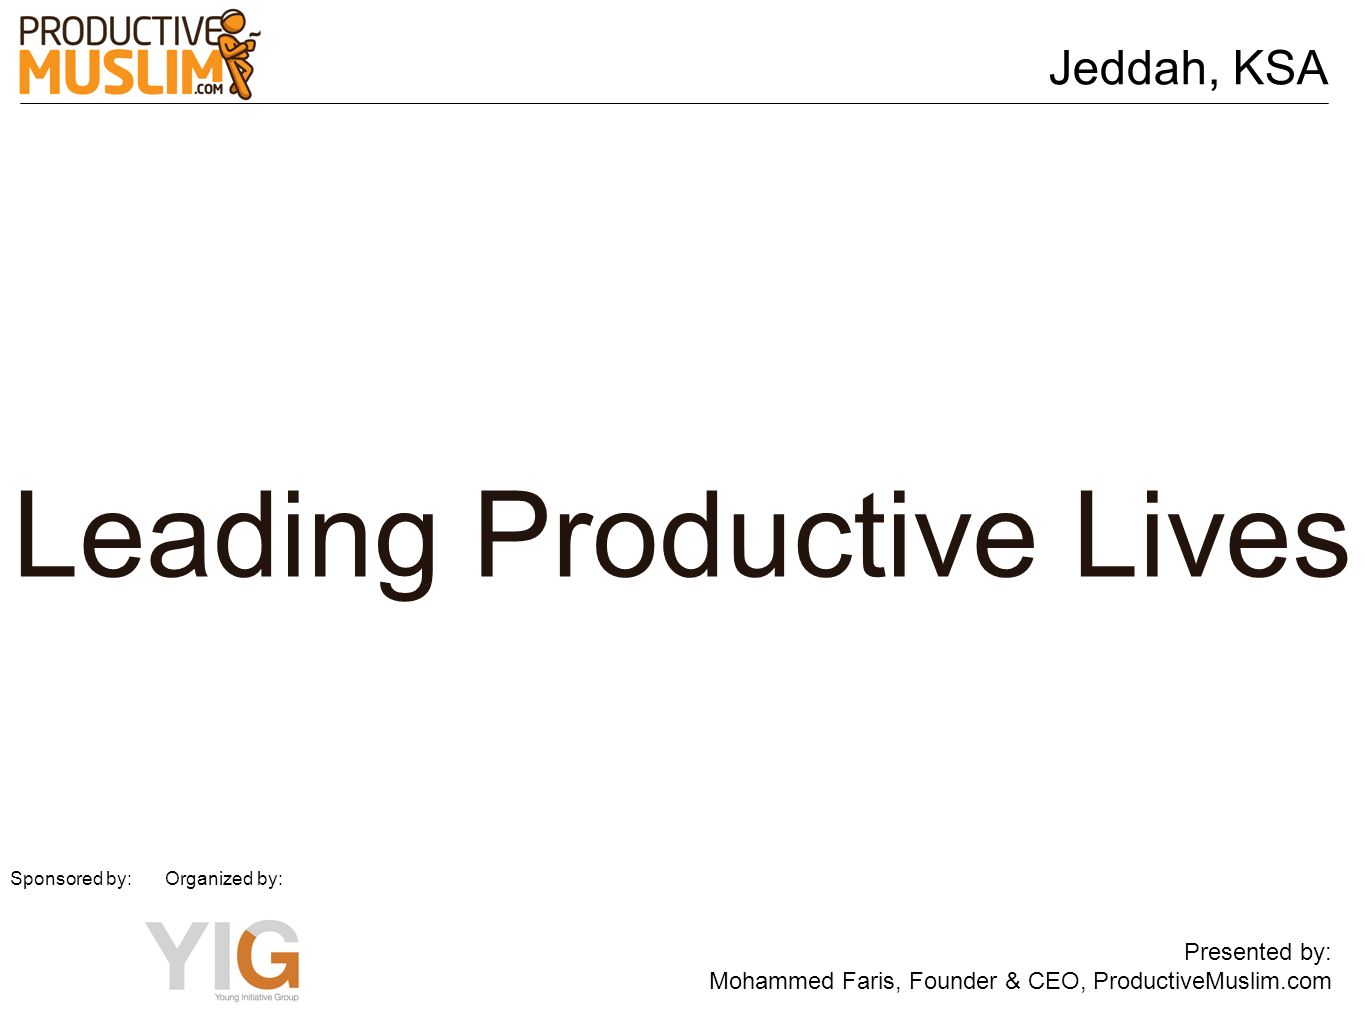 Jeddah, KSA Presented by: Mohammed Faris, Founder & CEO, ProductiveMuslim.com Sponsored by: Organized by: Leading Productive Lives